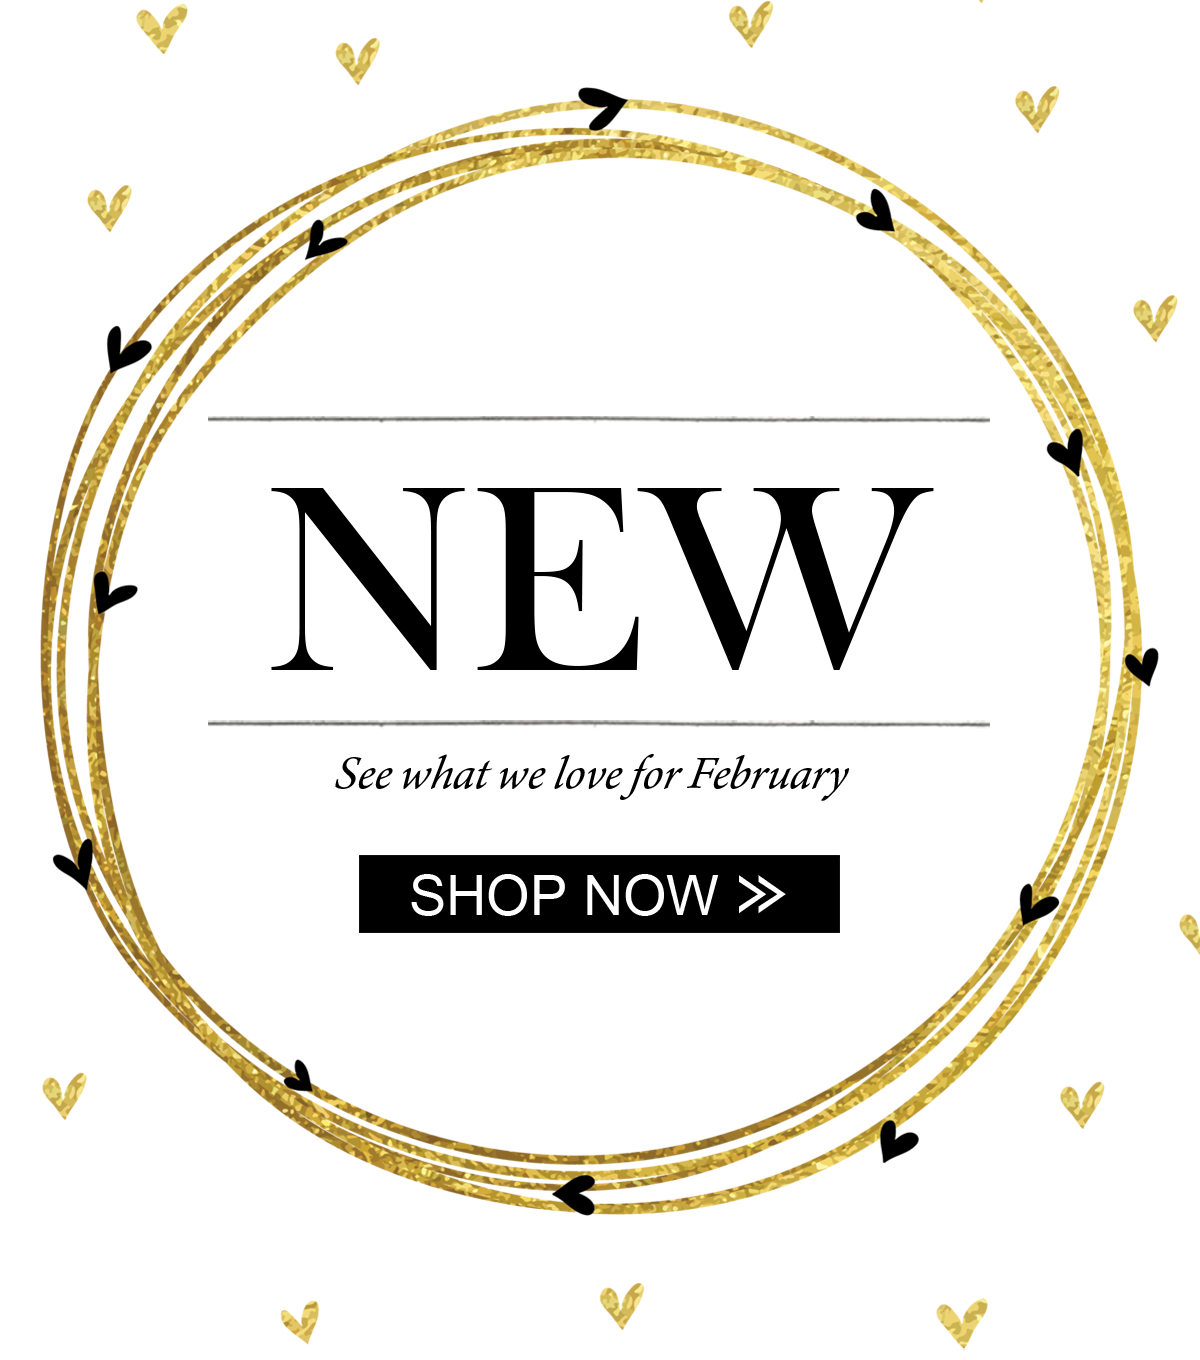 NEW See what we love for February Shop Now